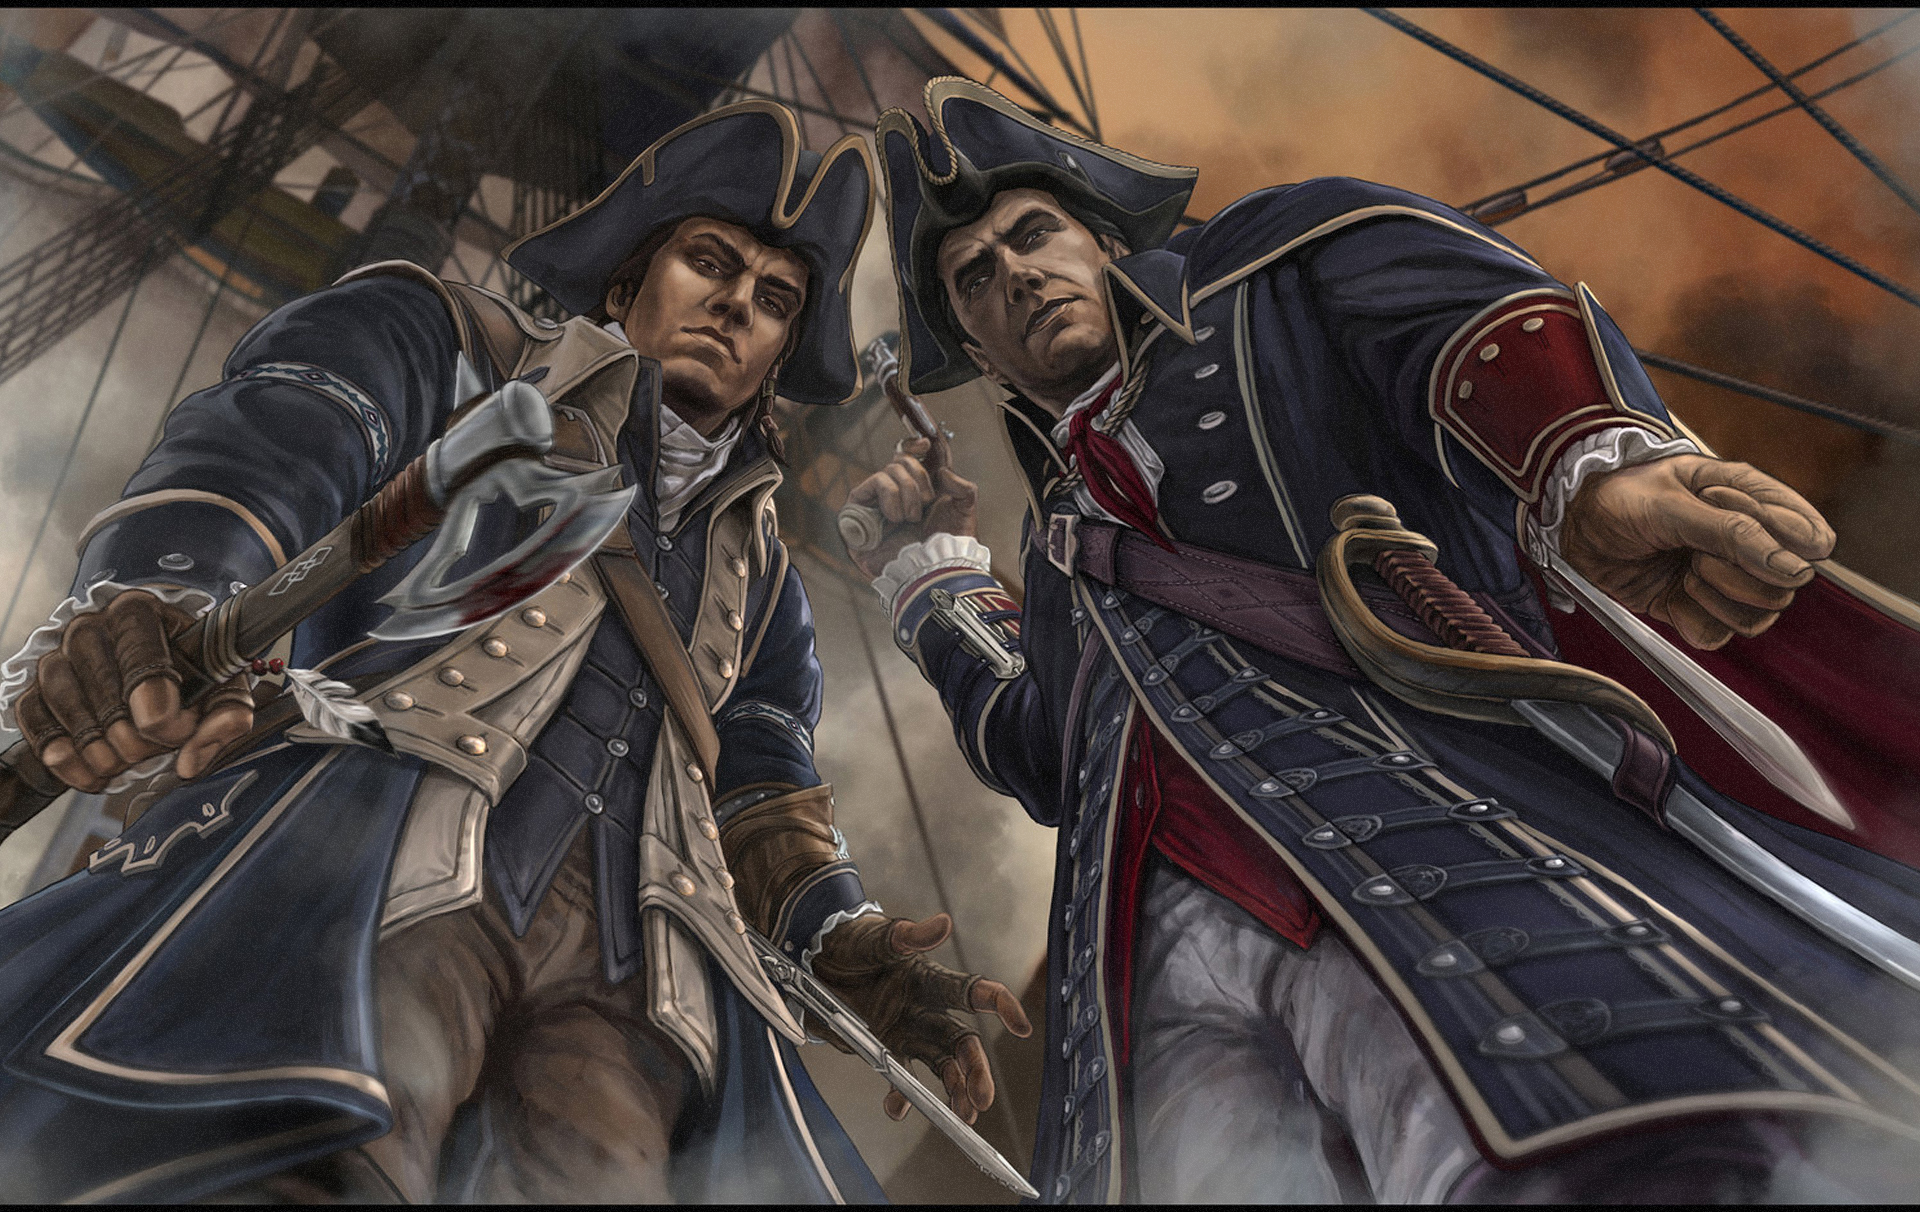 Hd Image Of Assassin S Creed Iii Image Of Connor Kenuey Hatem